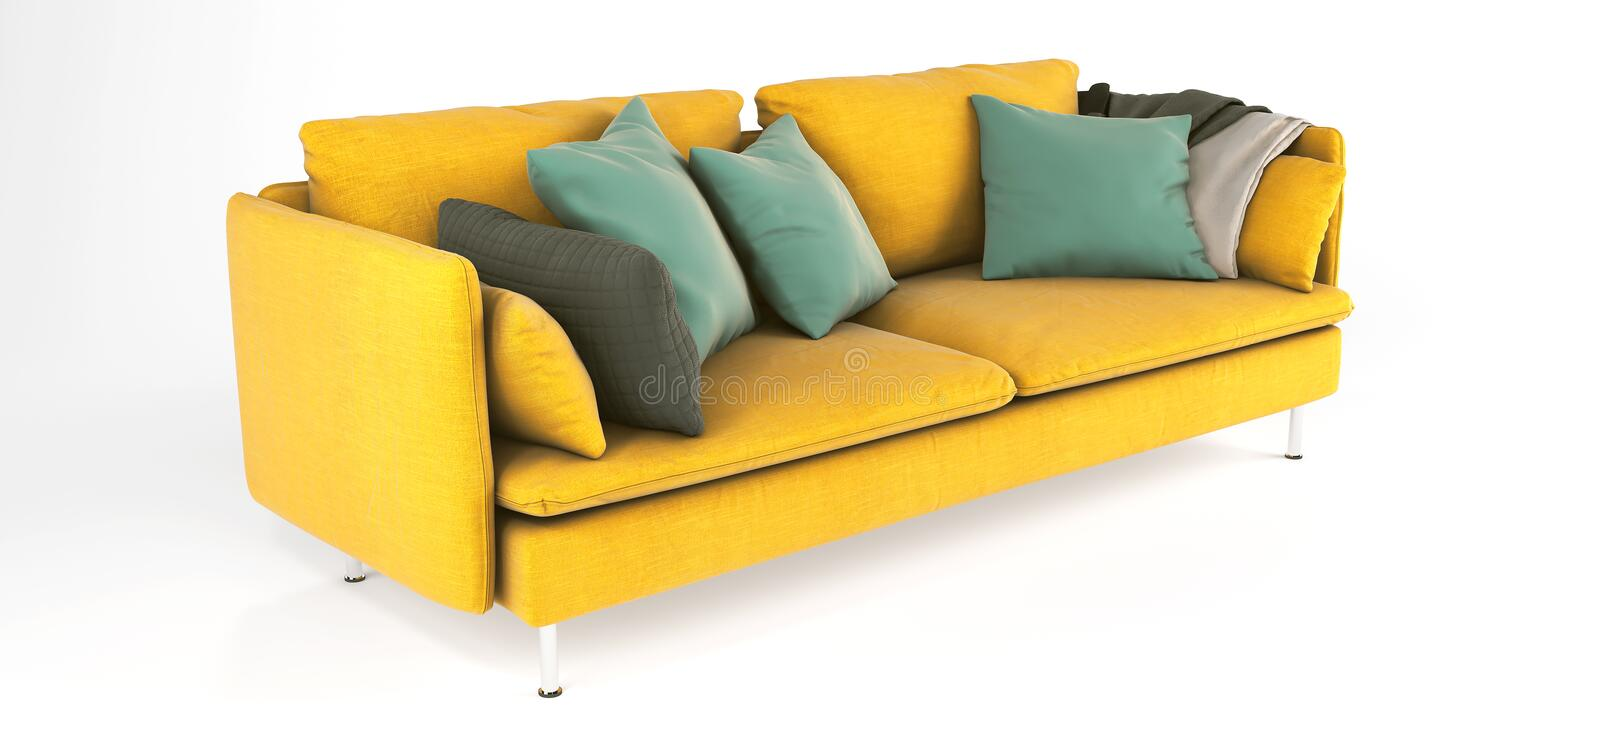 Modern scandinavian yellow sofa with legs with emerald green pillows and plaid on isolated white background. Furniture, interior royalty free stock images